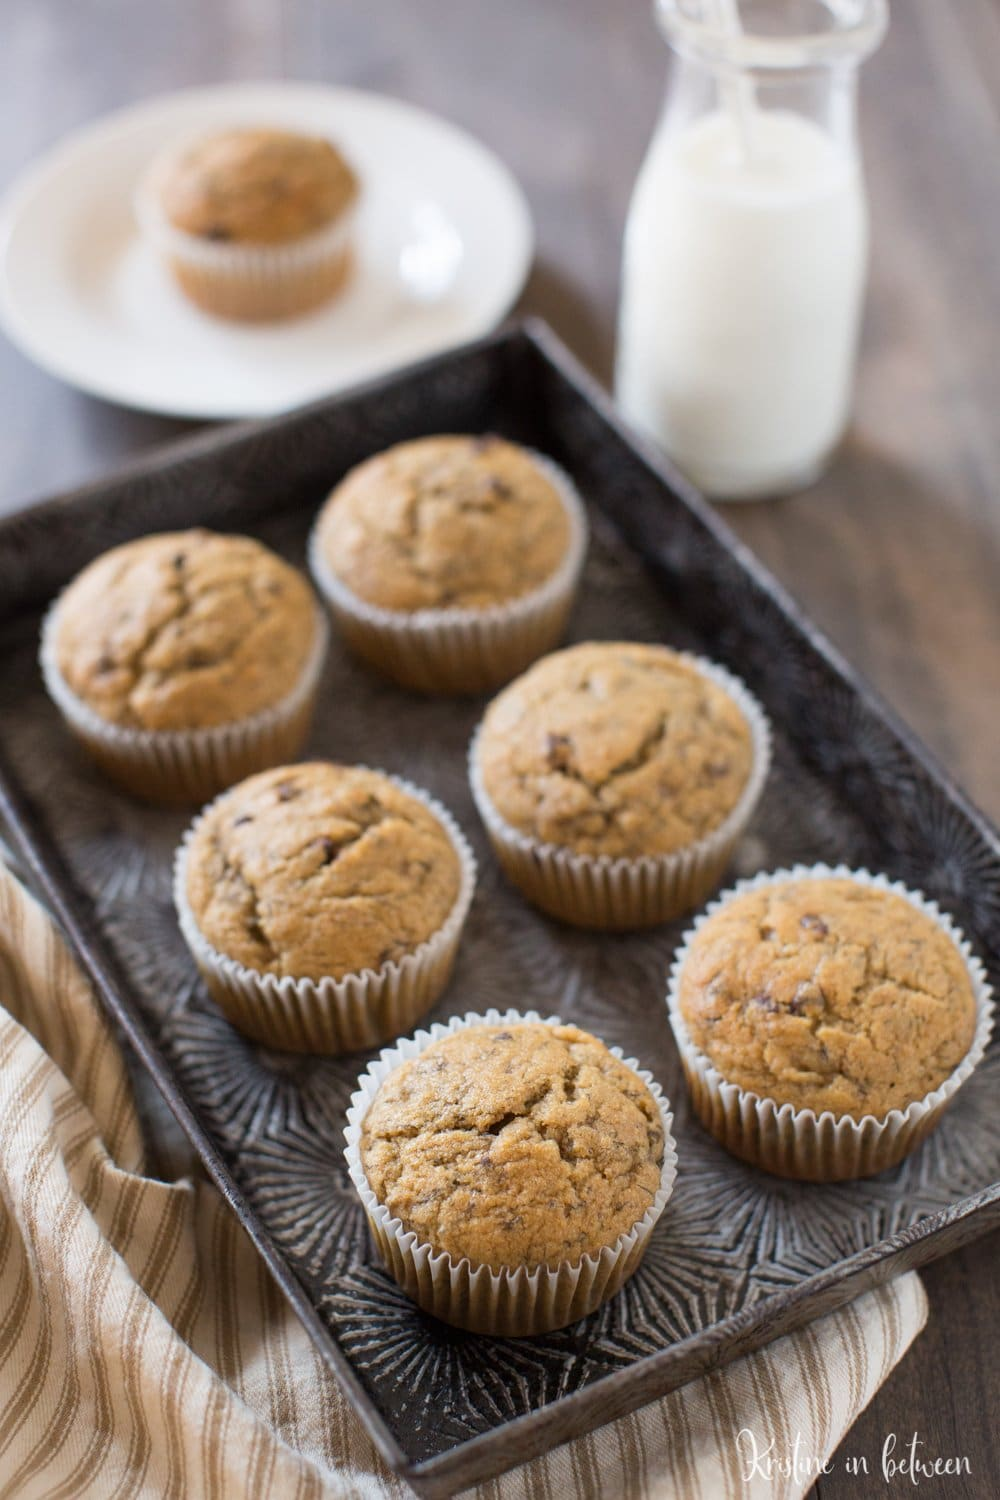 These whole wheat peanut butter banana muffins are the perfect breakfast or snack!